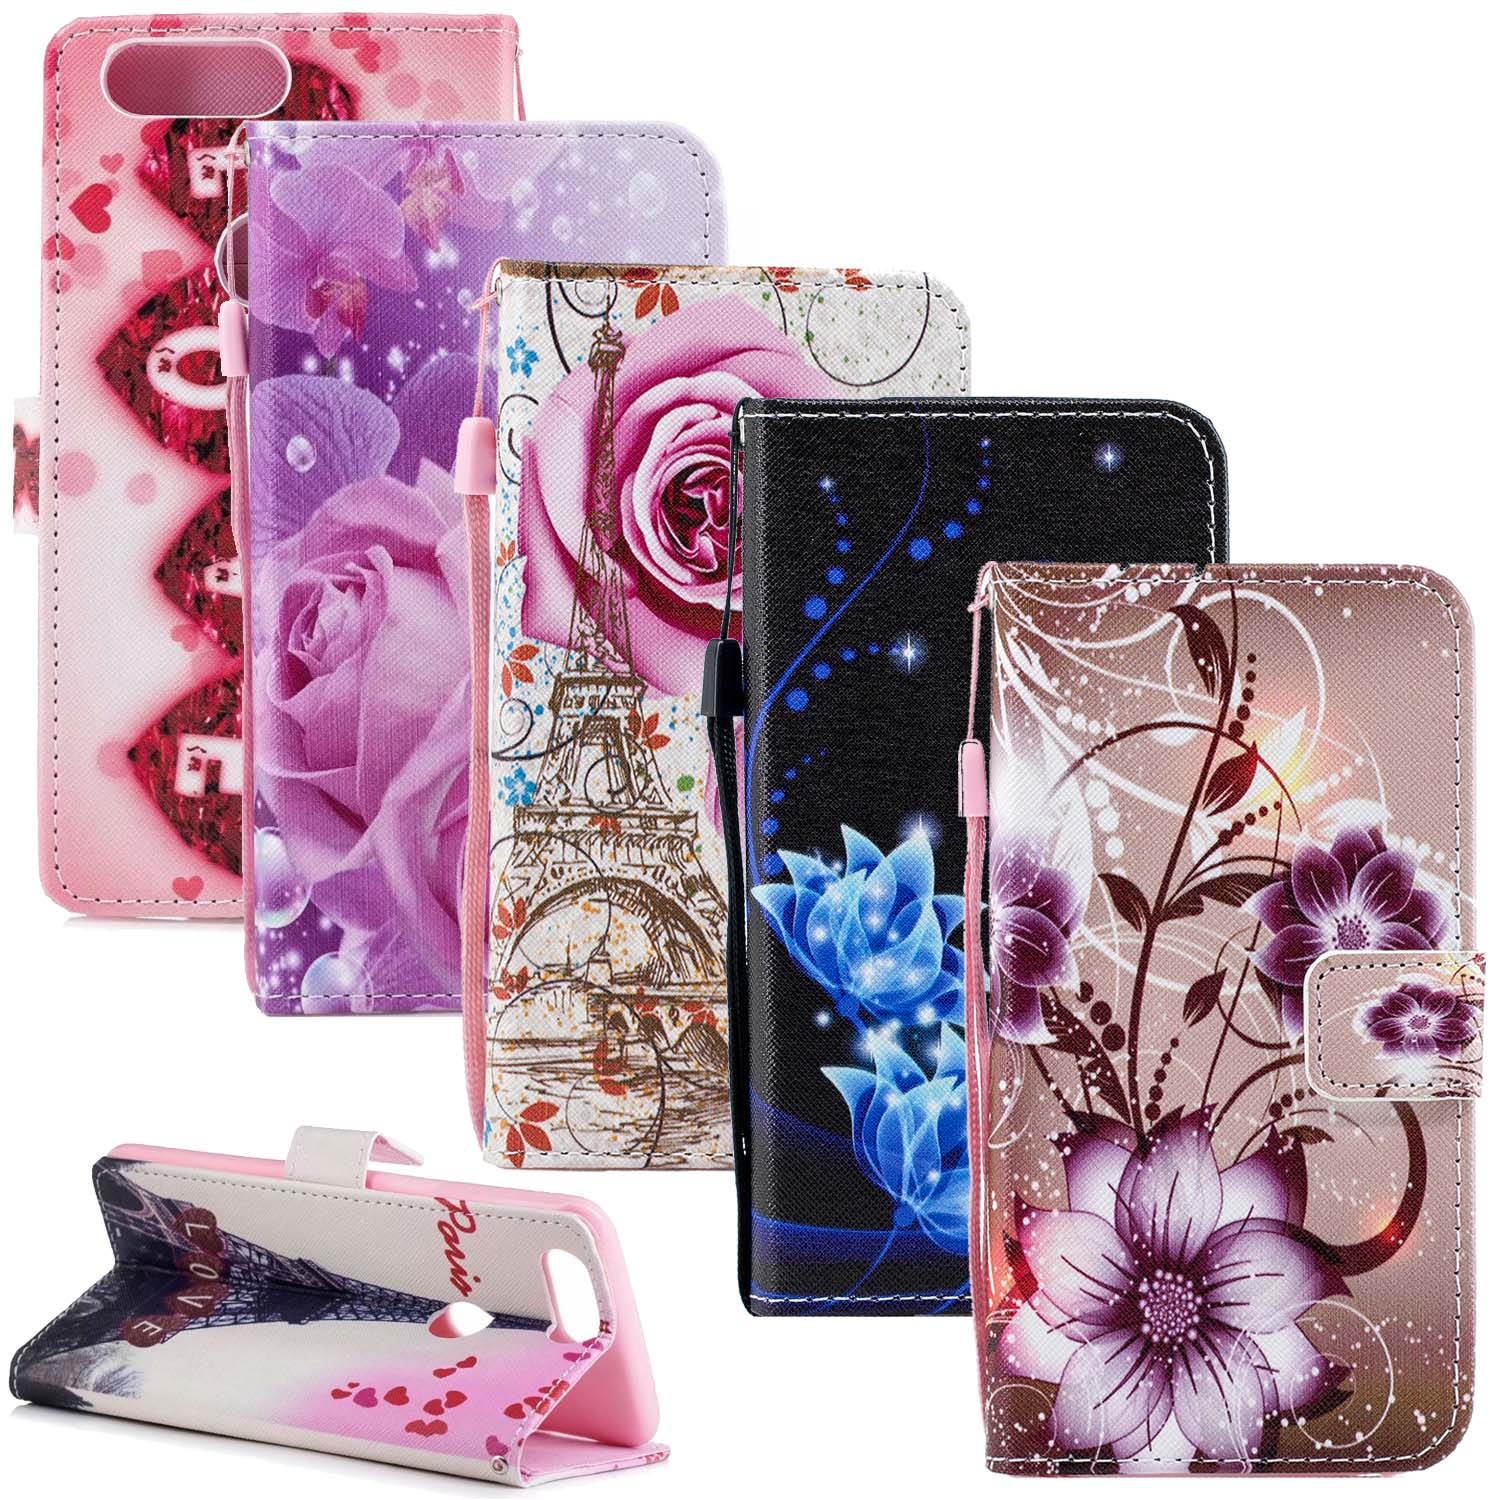 One Plus 5T 6T Flower Leather Cases For <font><b>Oneplus</b></font> 6T A6010 <font><b>A6013</b></font> Case <font><b>Oneplus</b></font> 5T A5010 Flip Cover 1+ 5T 6T Wallet Phone Bag Coque image